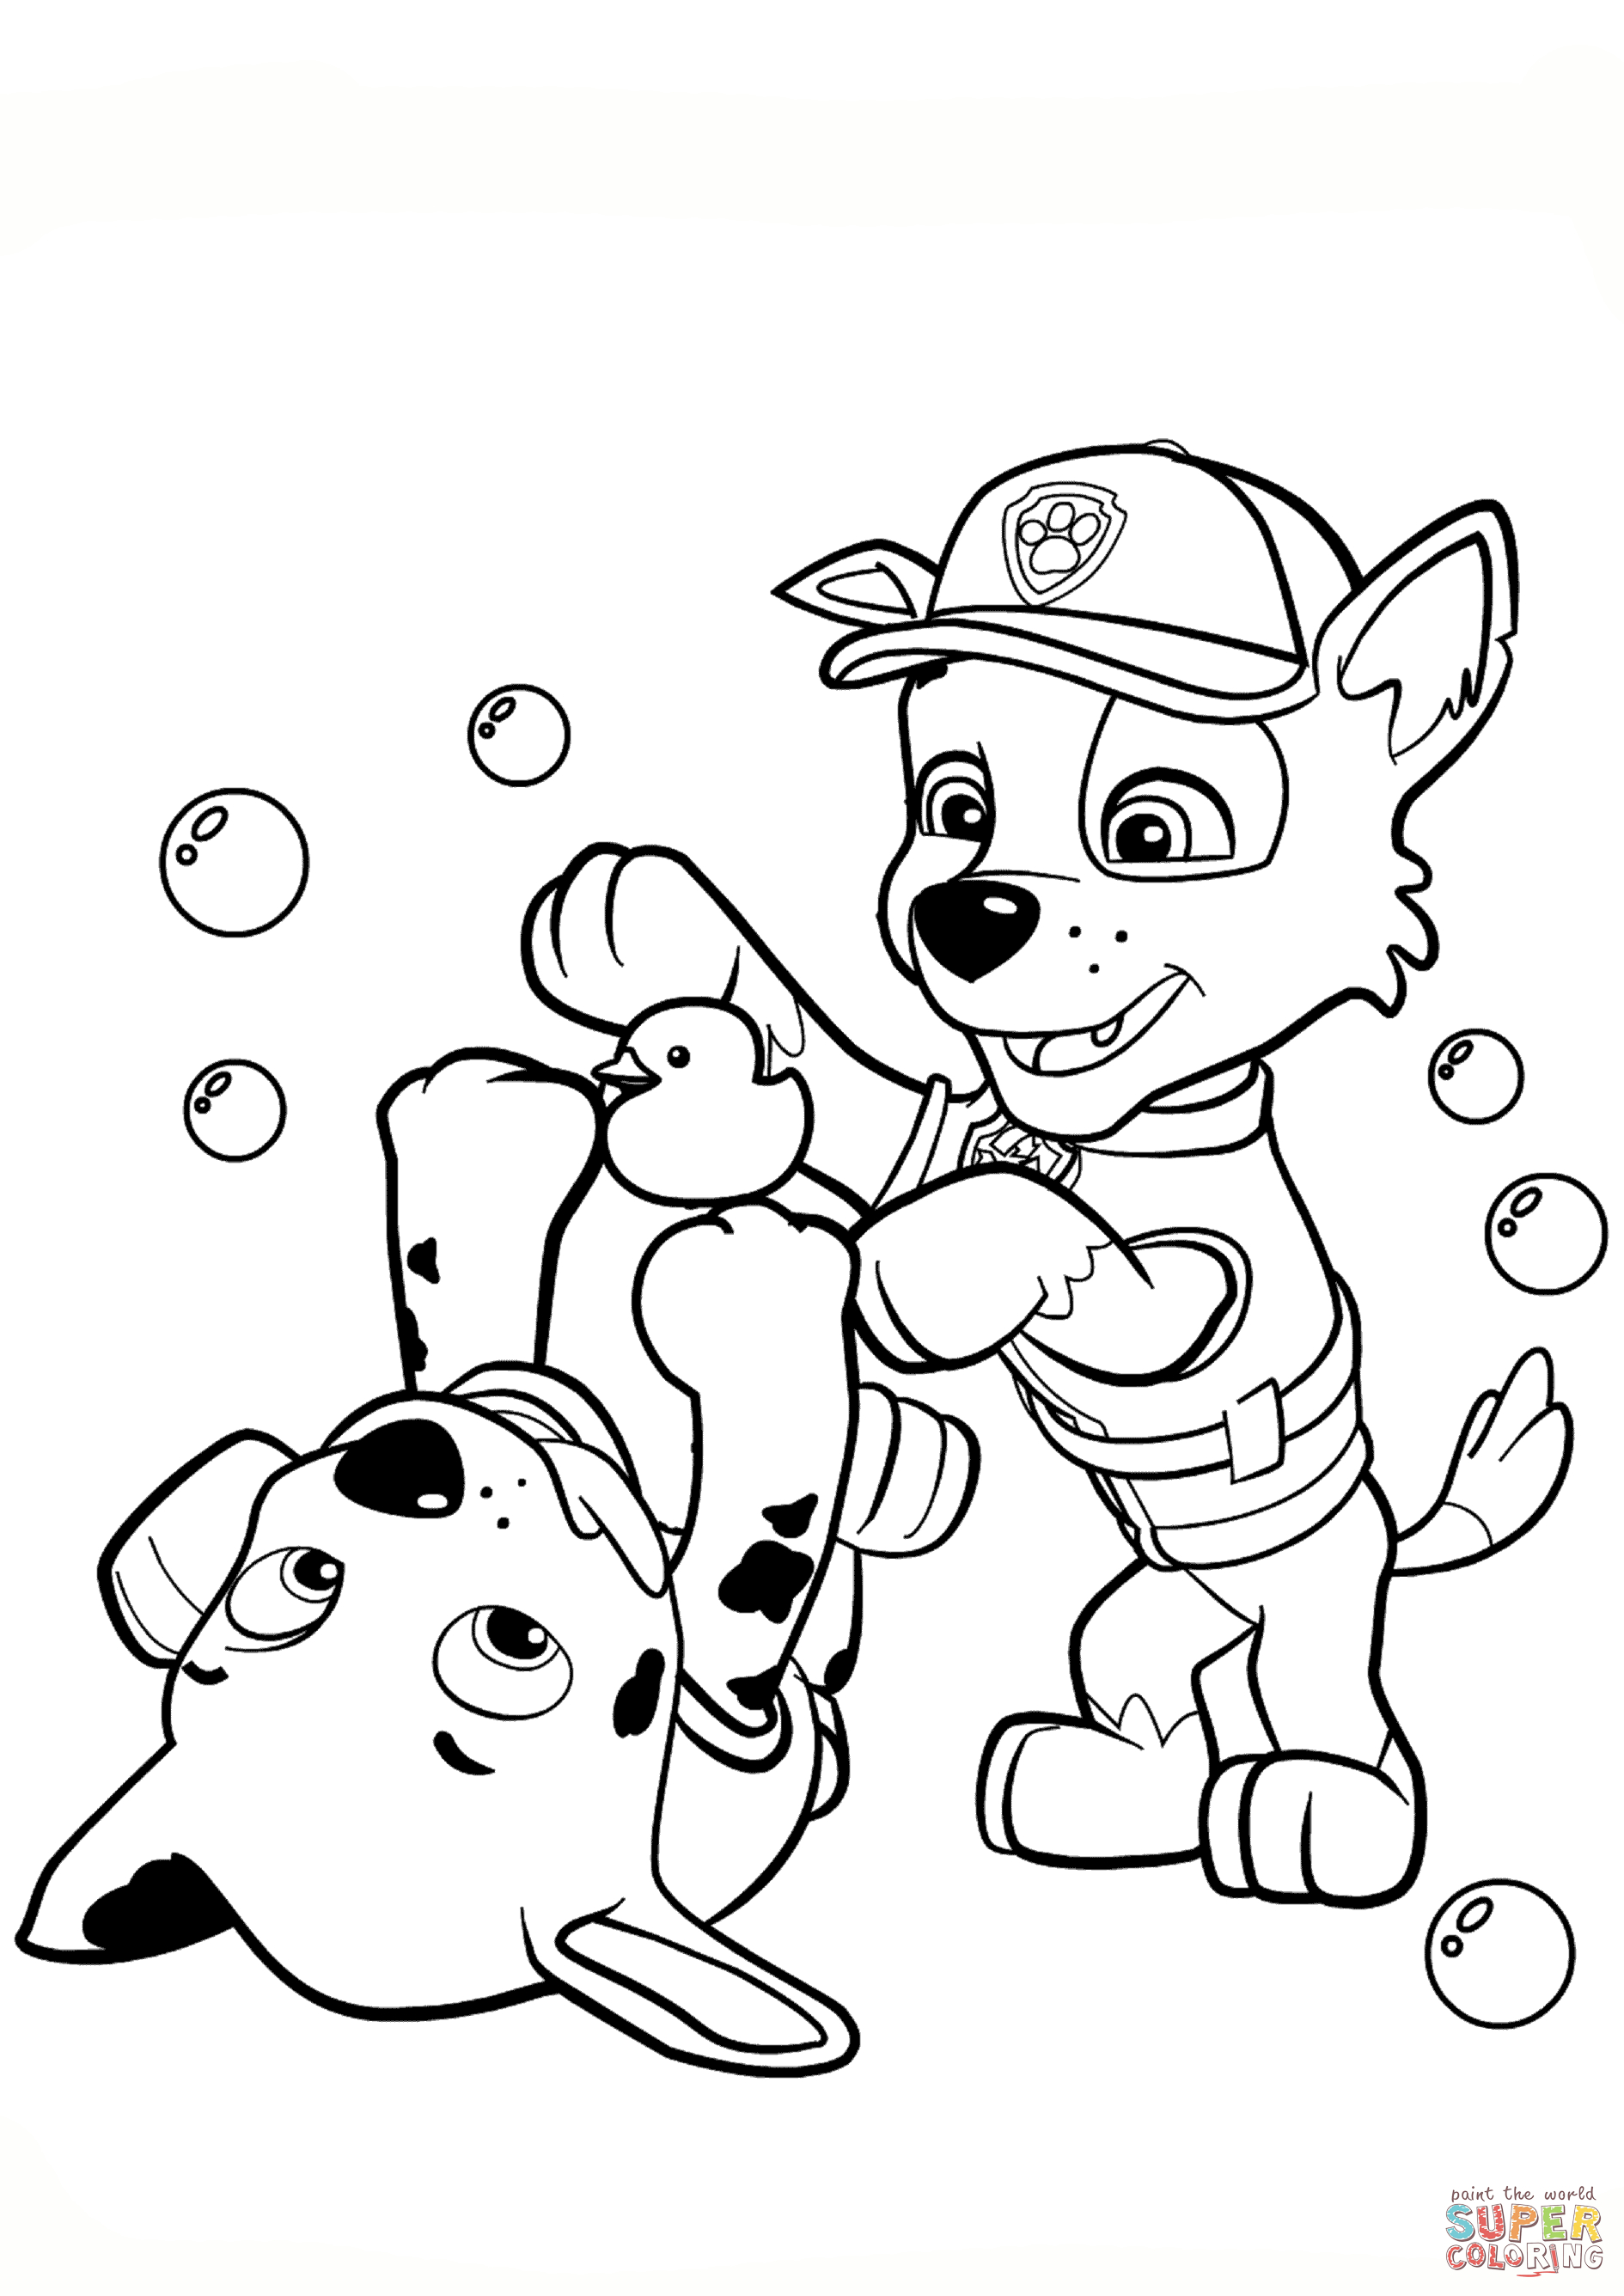 Coloring Ideas : Paw Patrol Rocky And Marshall Coloring Page - Free Printable Paw Patrol Coloring Pages